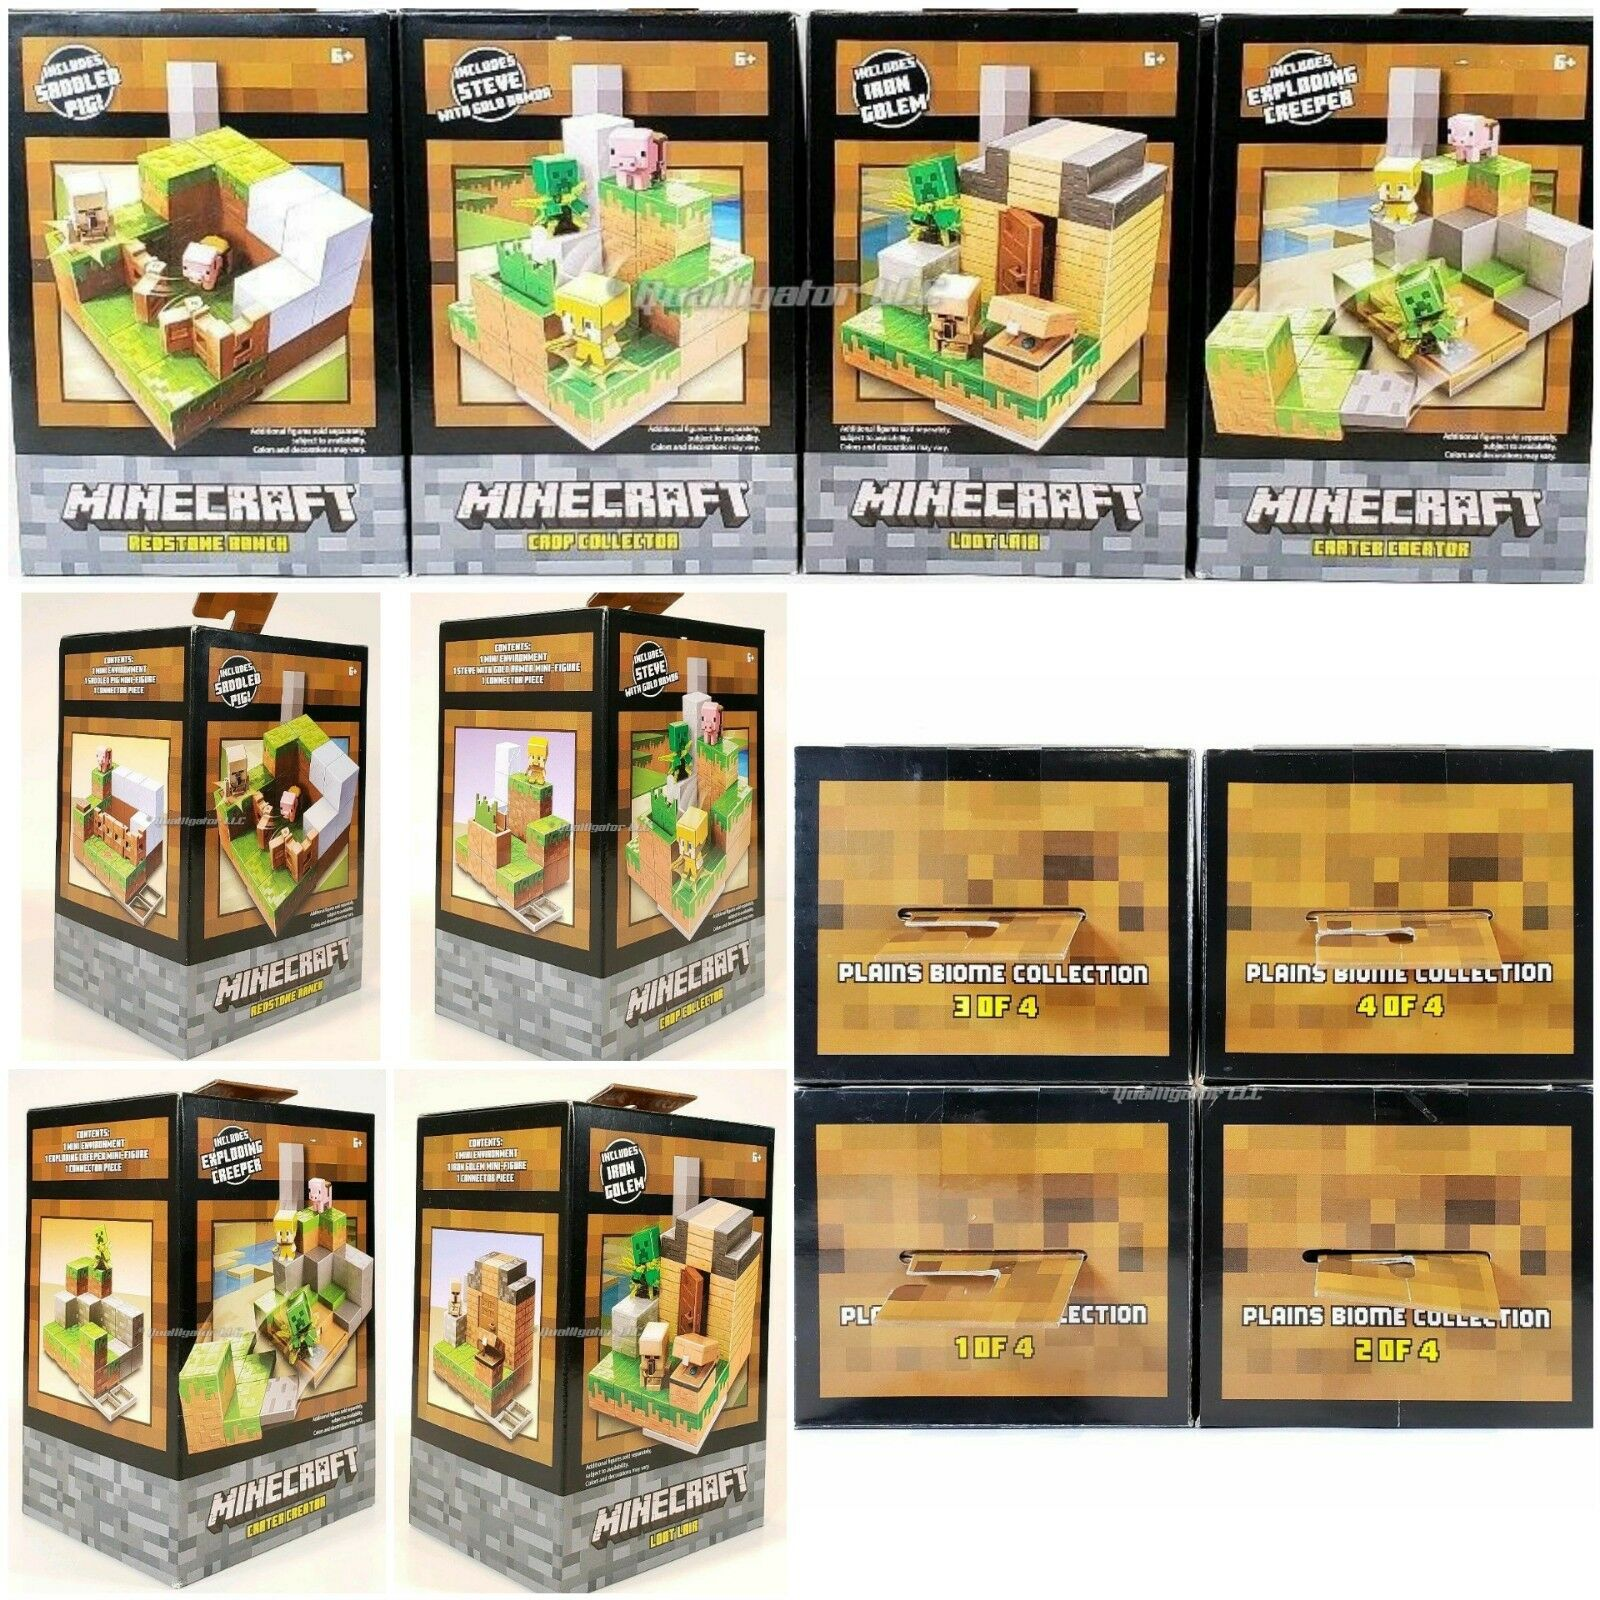 NEW Mineccraft Plains Biome samling complete Set of (4) Mattel Brand New Lot